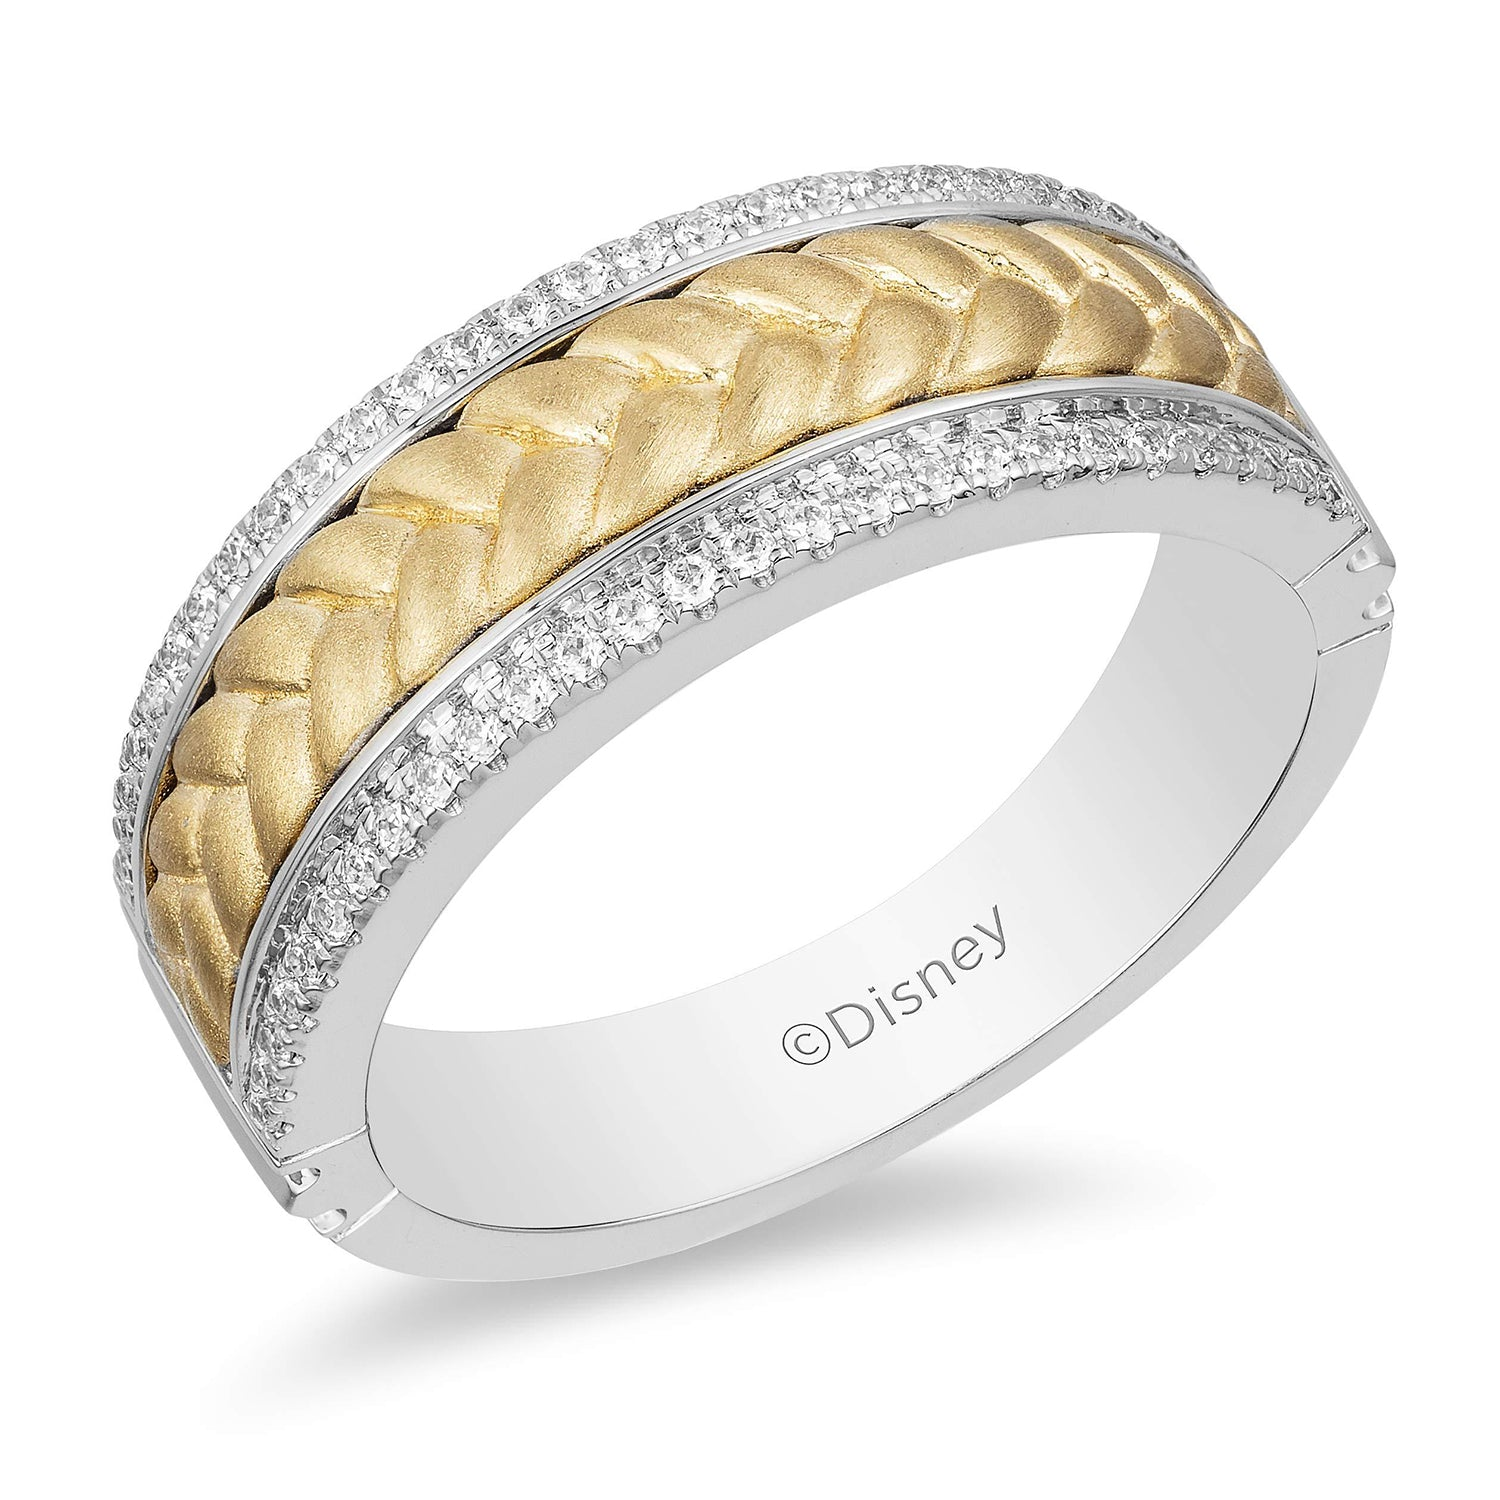 enchanted_disney-men-white_diamond_fine_jewelry_14k_white_and_yellow_gold_1_4_cttw_gents_ring-white_and_yellow_gold_1/4CTTW_1